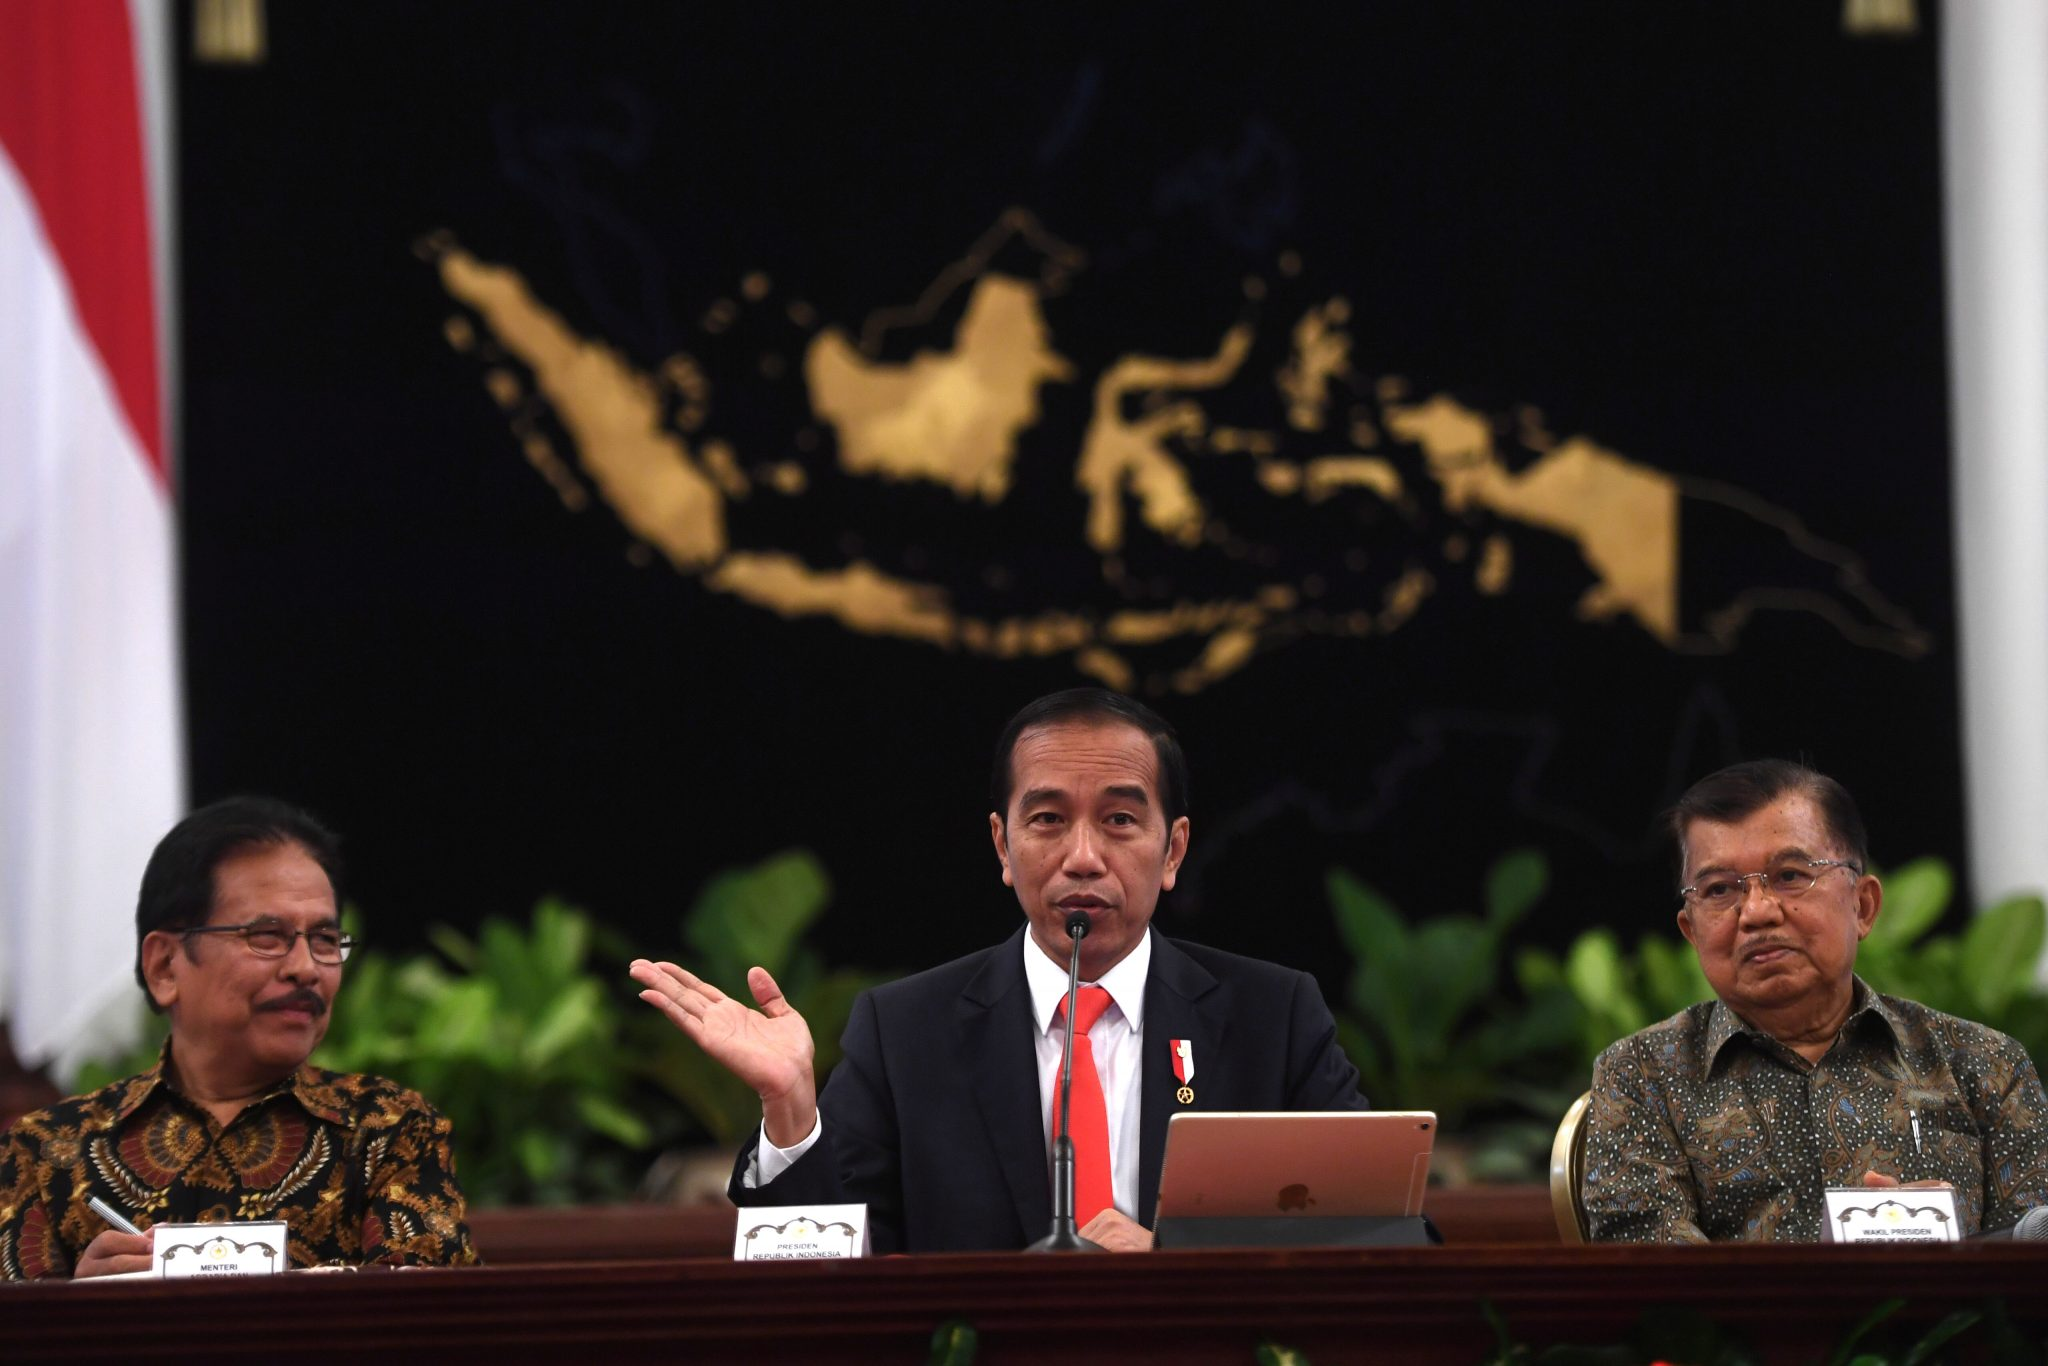 Why Jokowi wants to move the Indonesian capital